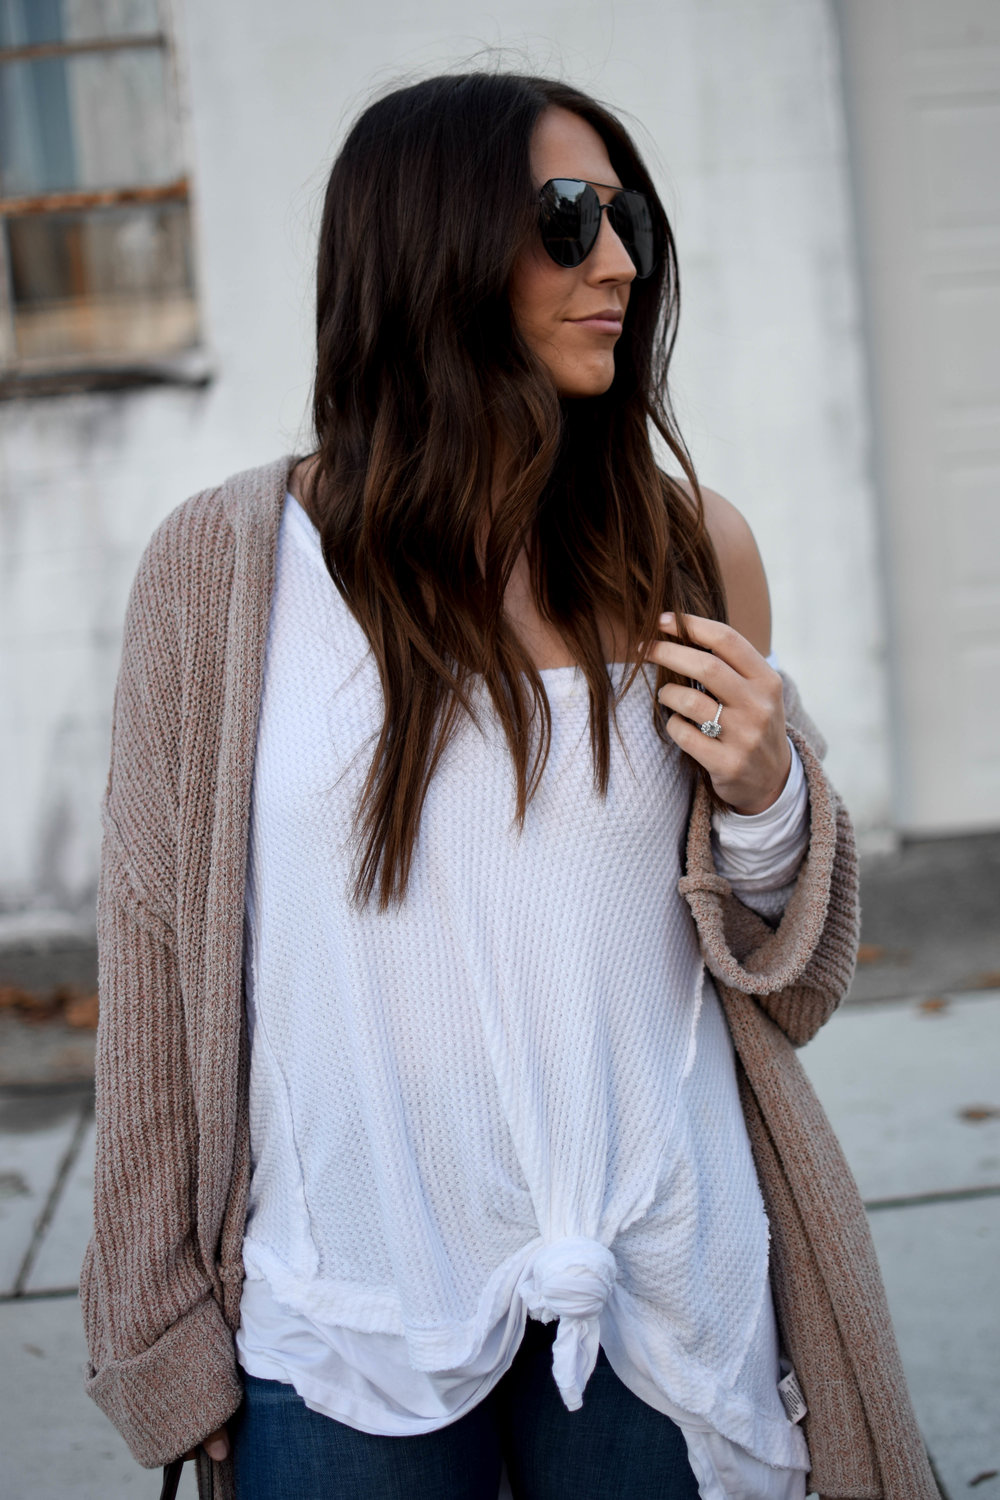 fall fashion / fall outfit idea / fall outfit inspiration / free people thermal / free people cardigan / fall feels / fall vibes